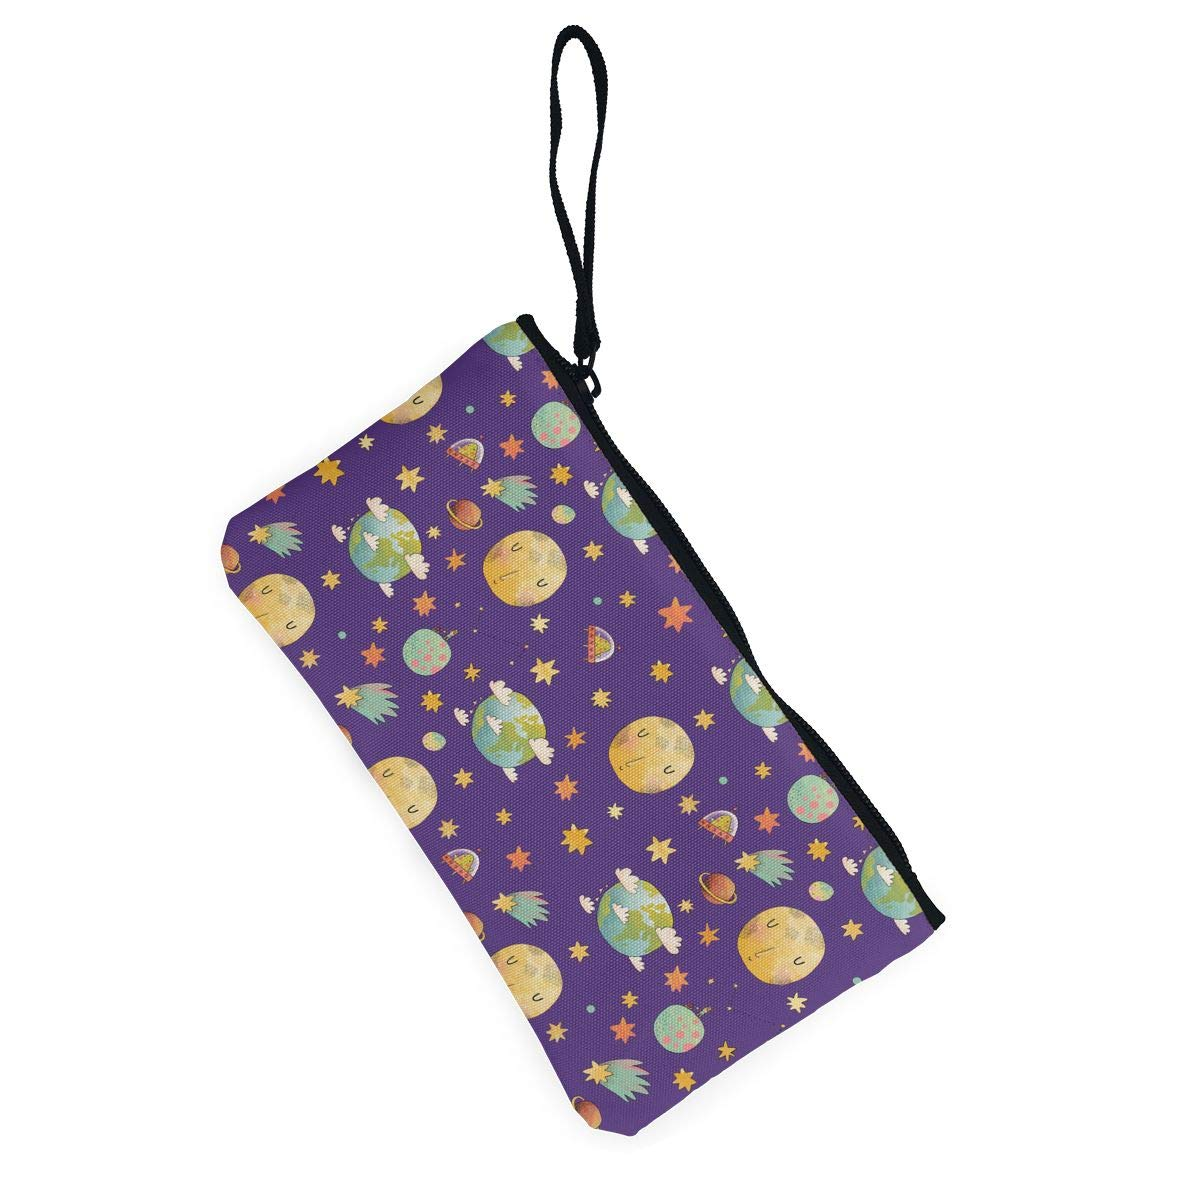 Bk55Oi/&/& Womens Vintage Coin Purse Awesome Cosmic Pattern Canvas Makeup Bag with Zipper for Women